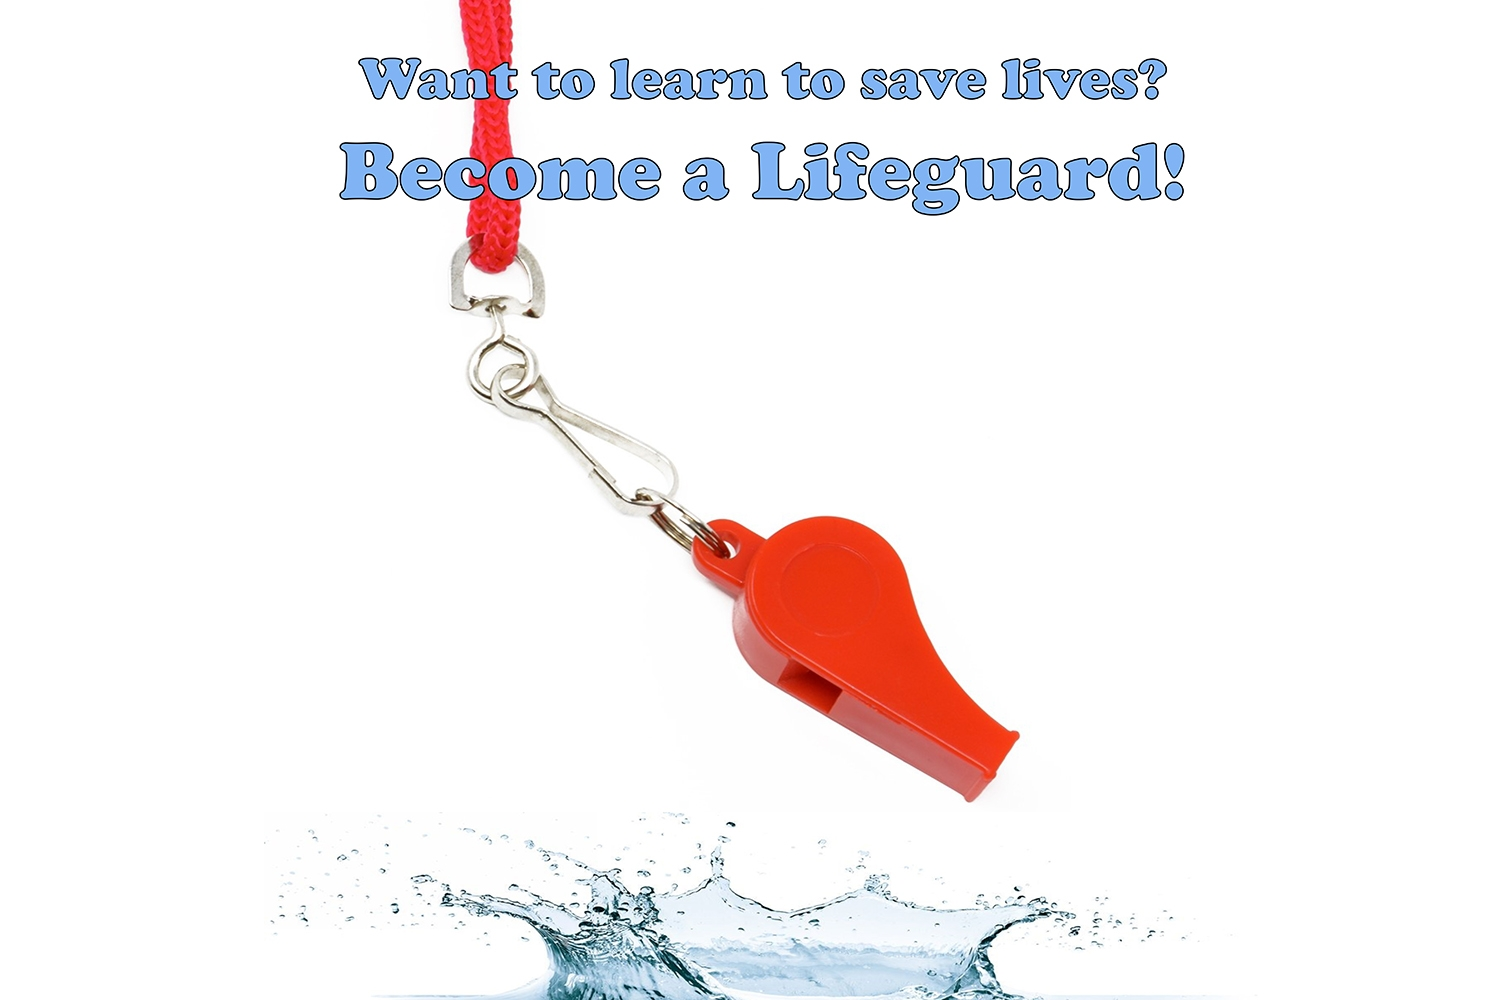 Want to learn to save lives? Become a Lifeguard!